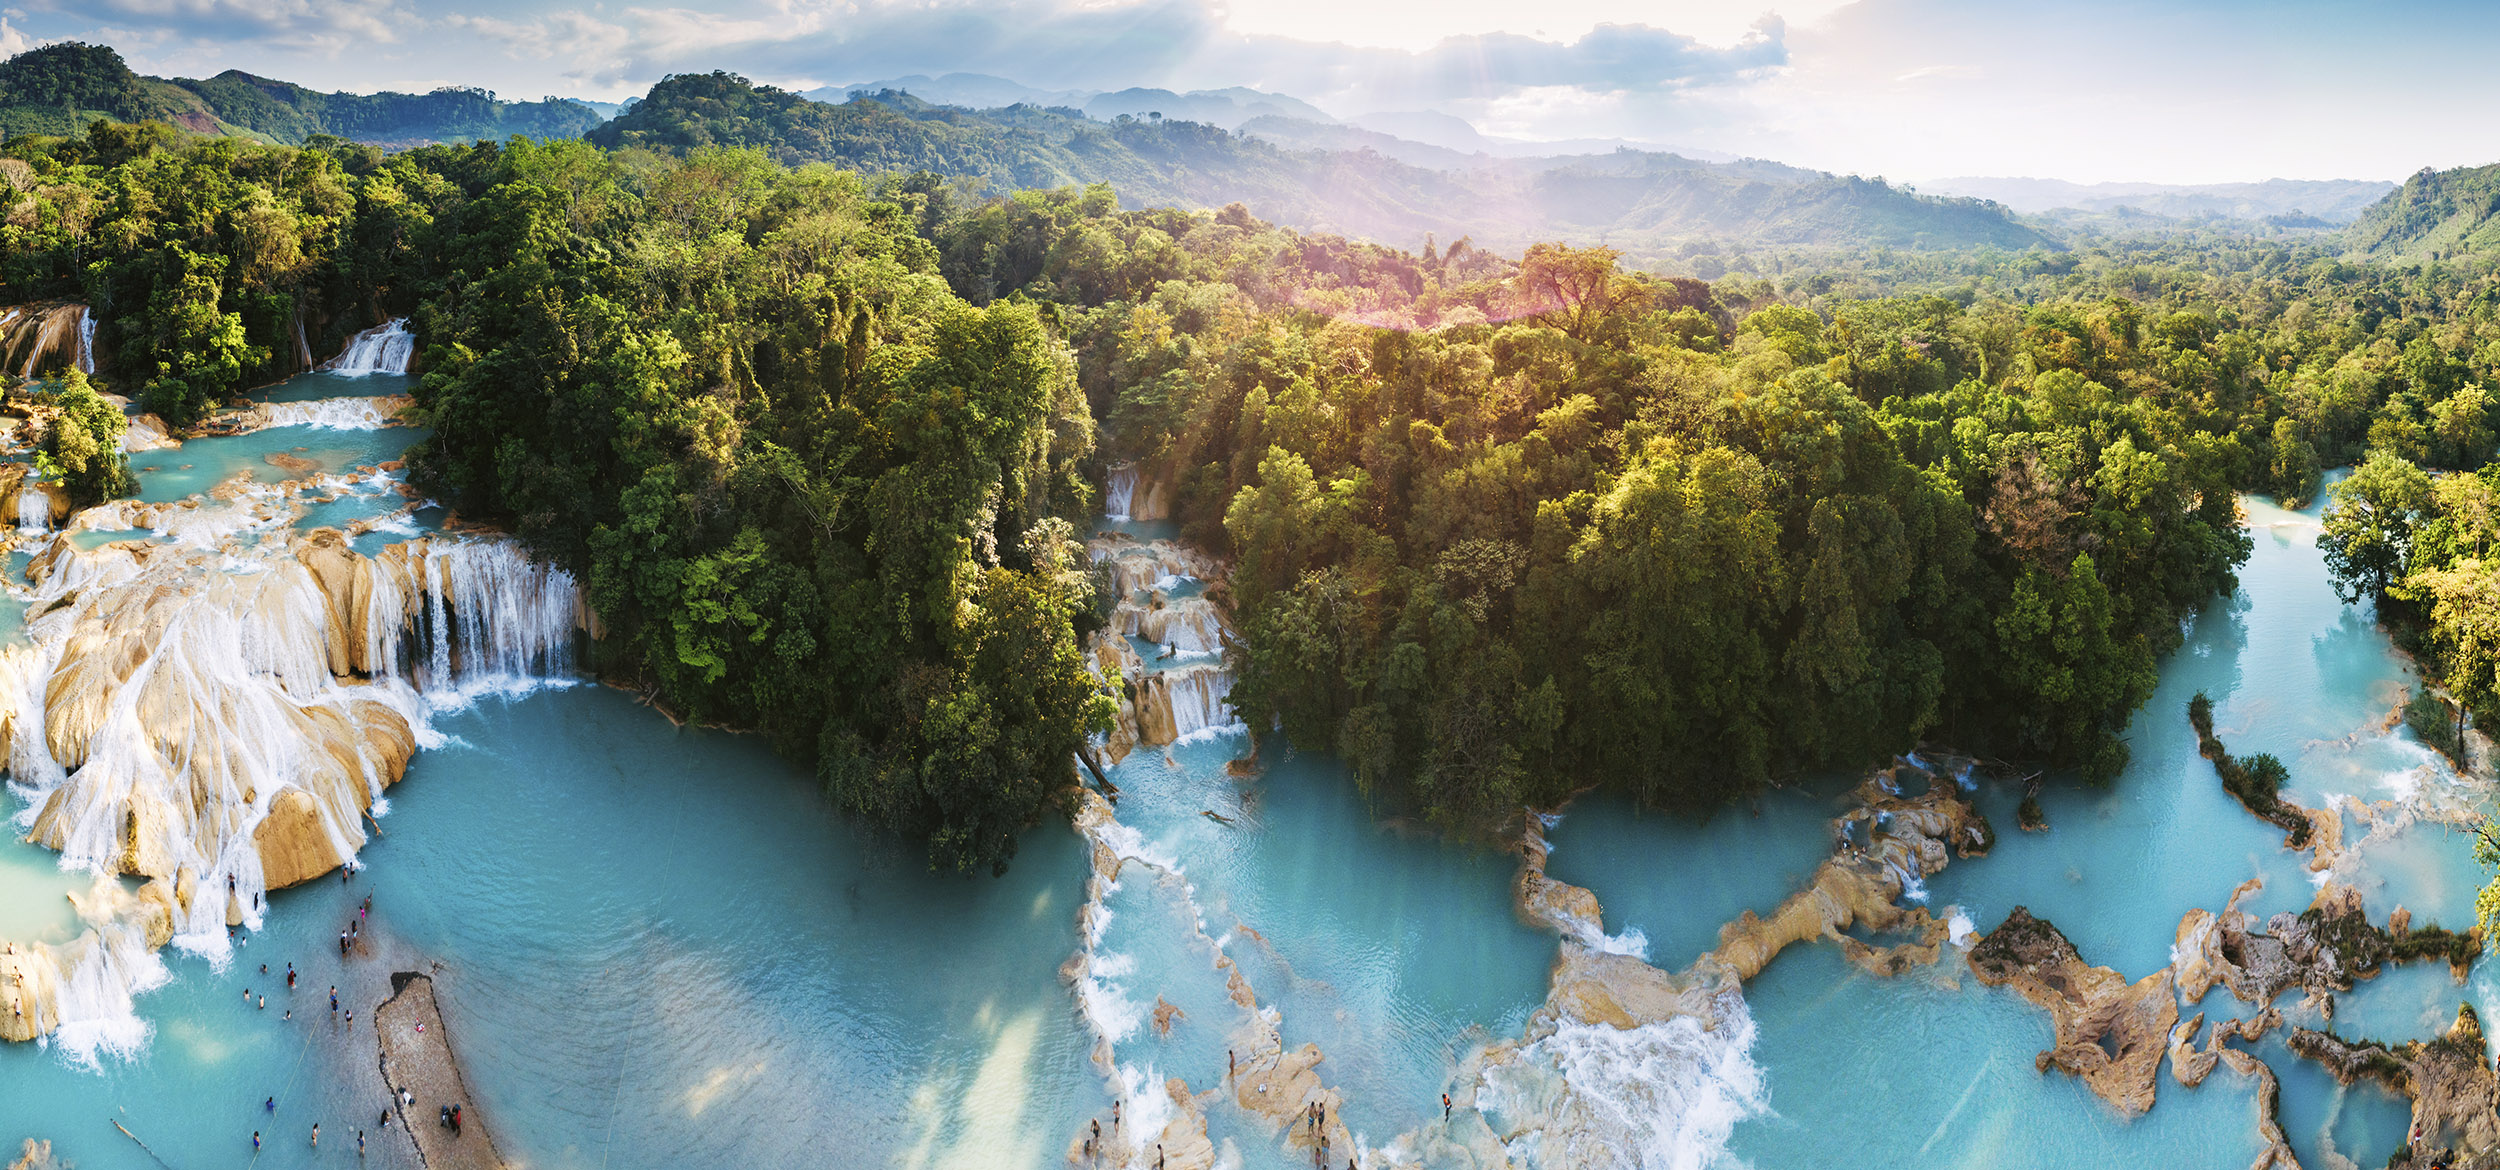 An aerial view of the Agua Azul Waterfalls in Chiapas, Mexico.